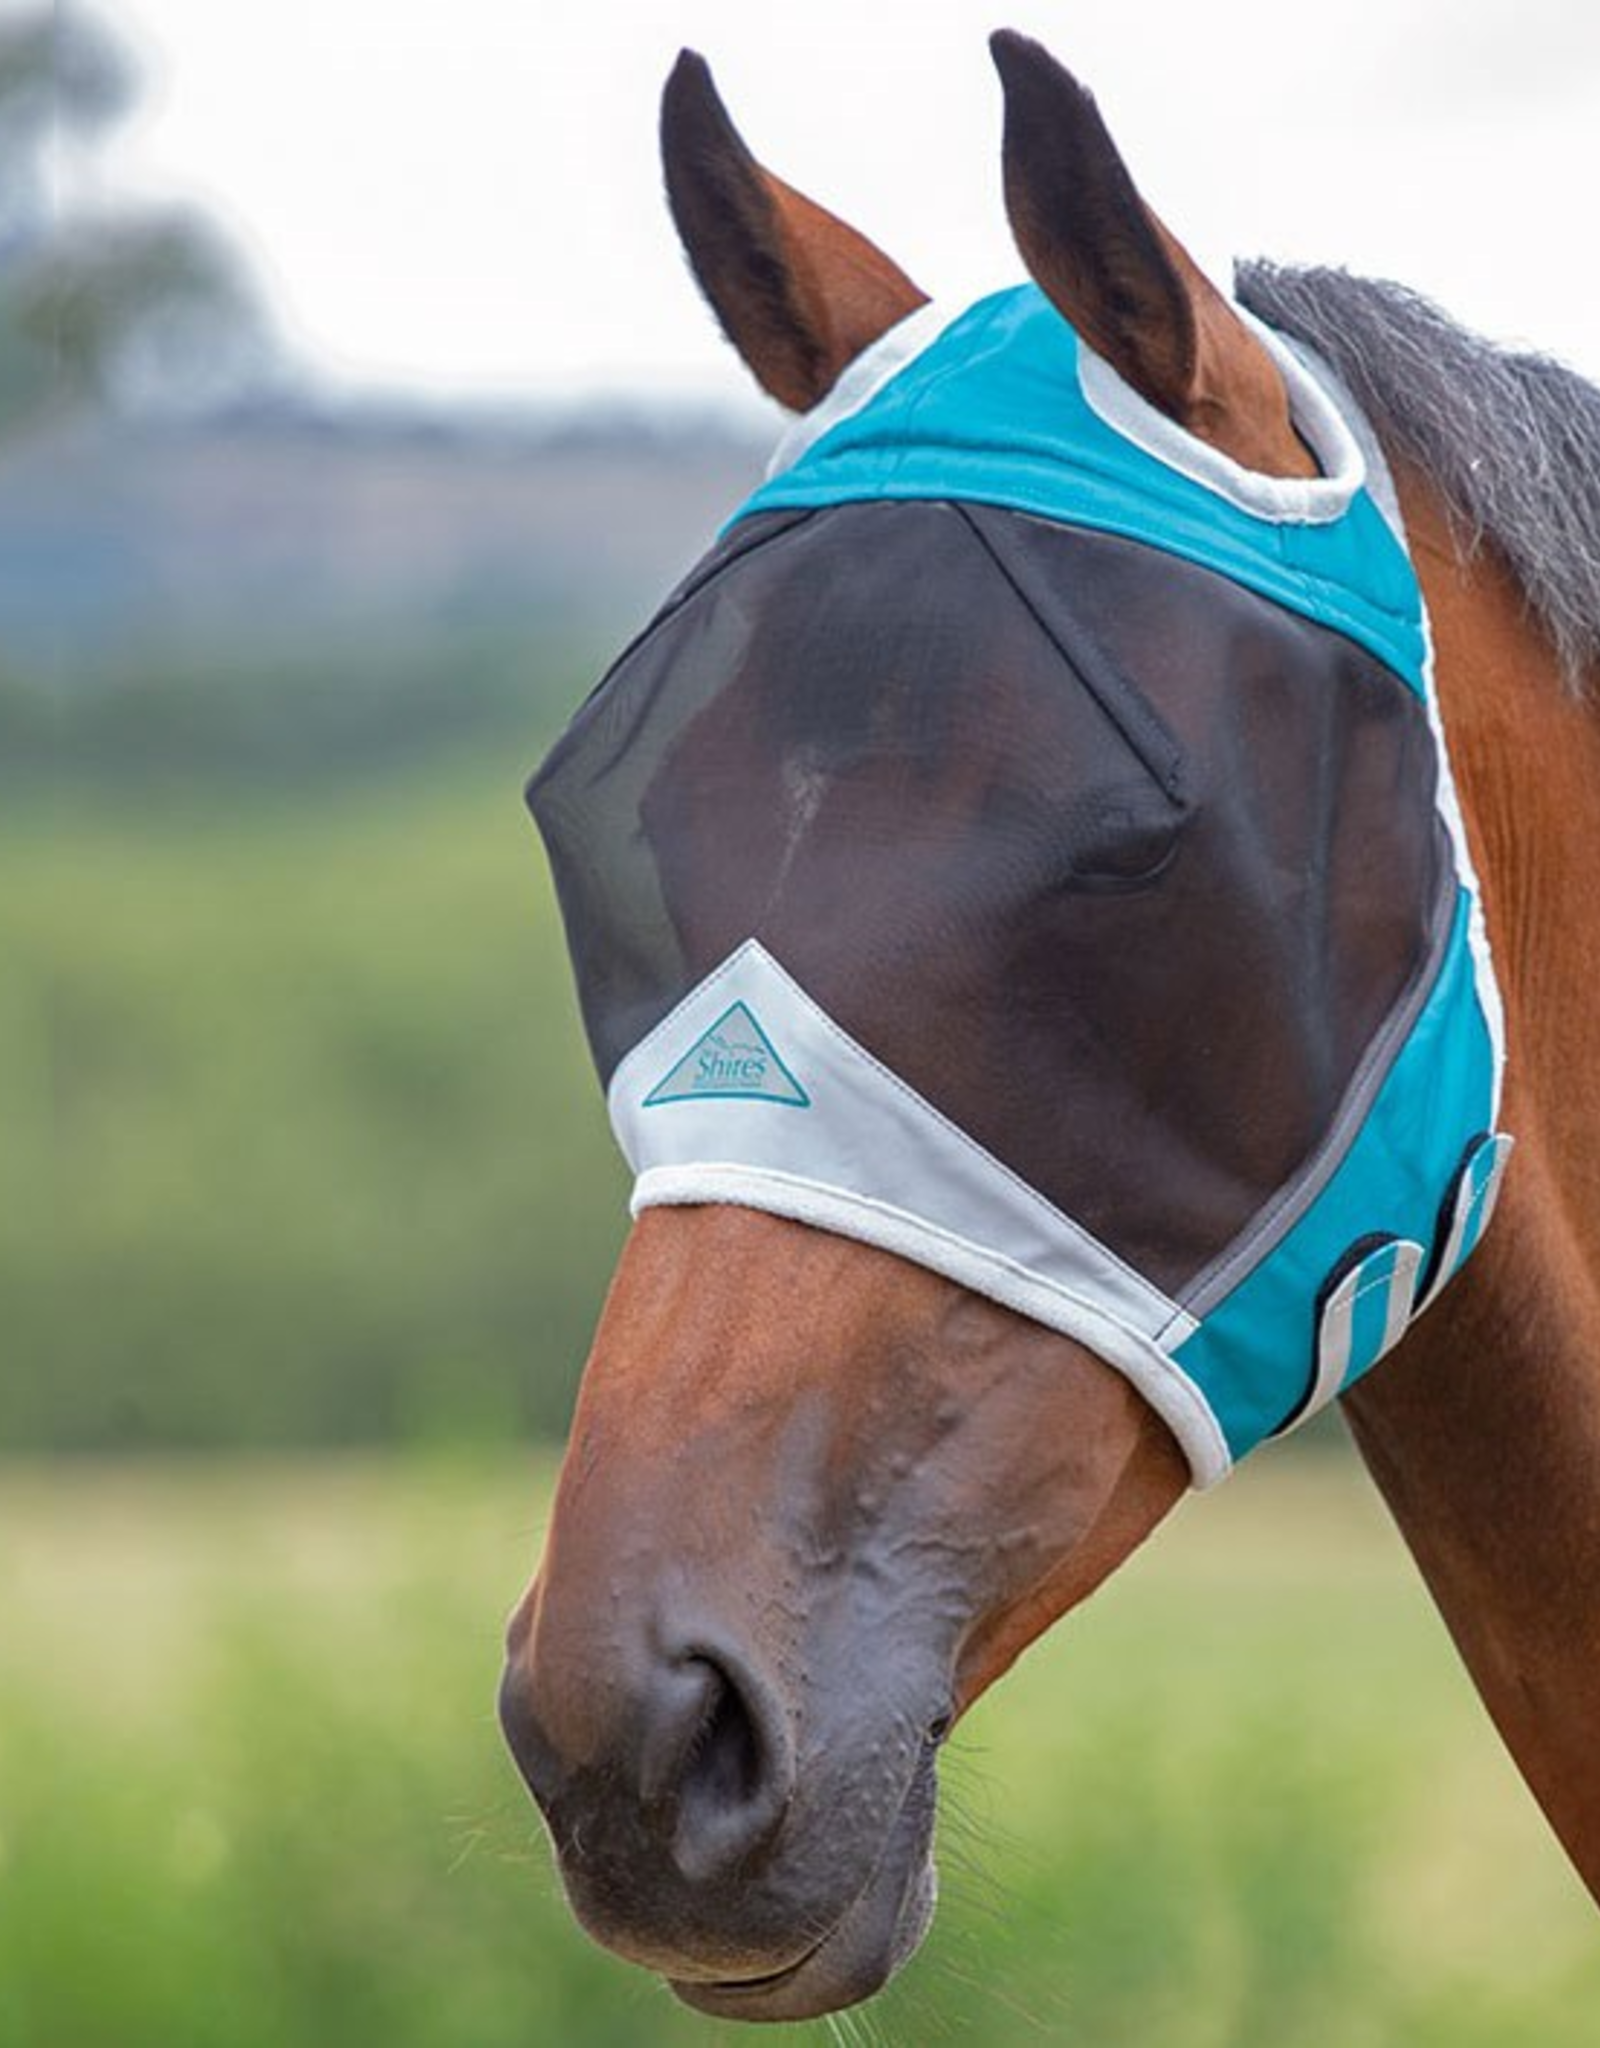 SHIRES FINE MESH FLY FASK WITH EAR HOLE